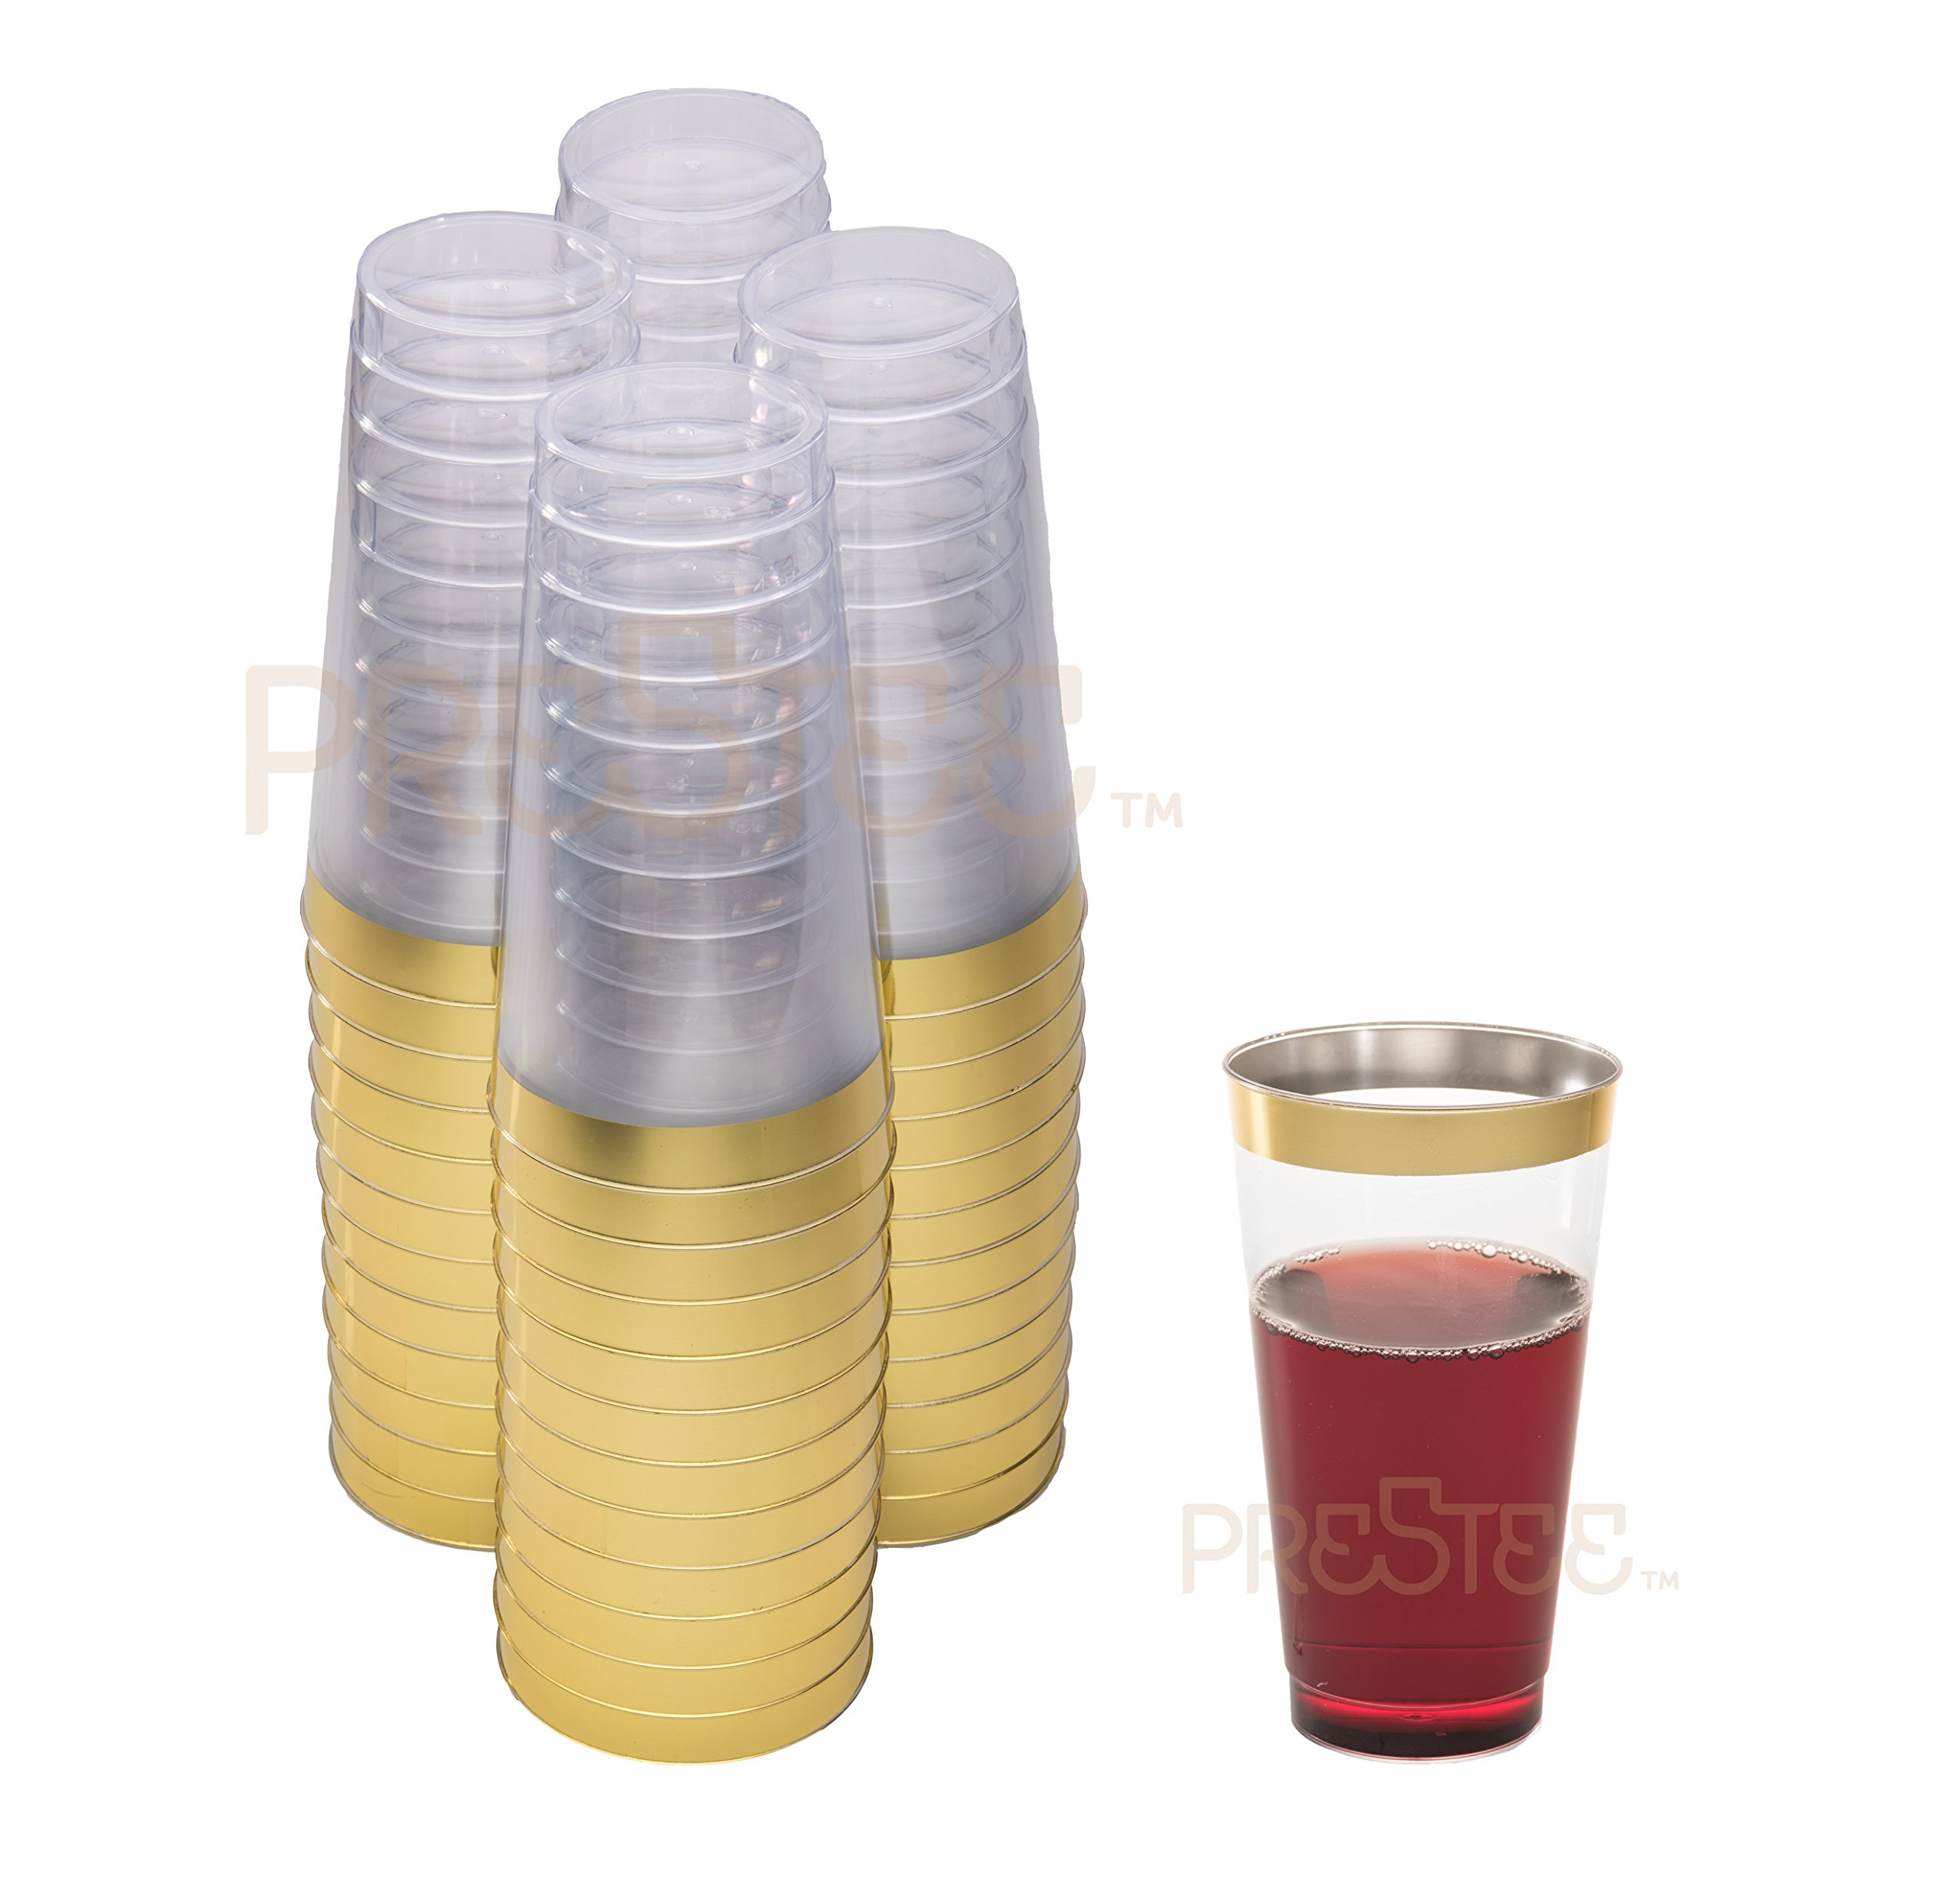 DRINKET Gold Plastic Cups 16 oz Clear Plastic Cups / Tumblers Fancy Plastic Wedding Cups With Gold Rim 50 Ct Disposable For Party Holiday and Occasions SUPER VALUE PACK by Prestee